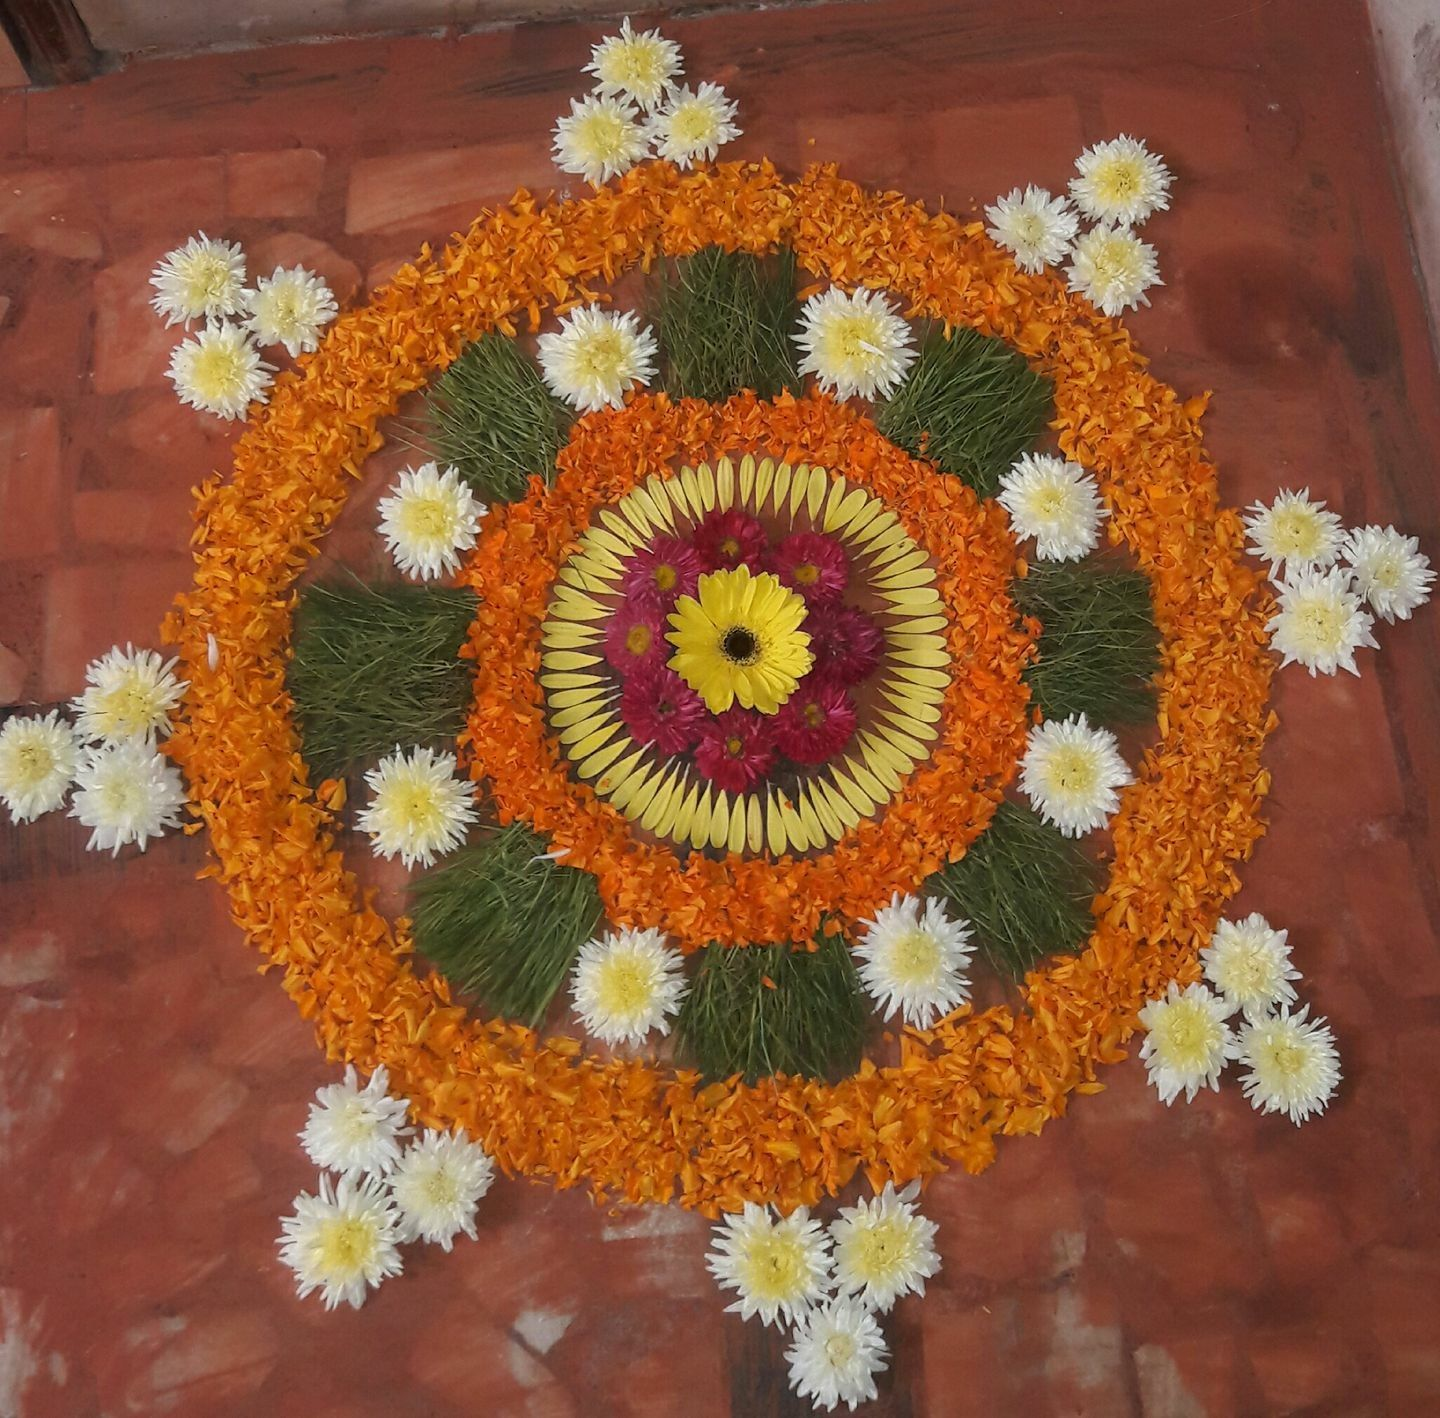 Flower rangoli Rangoli designs flower, Rangoli designs